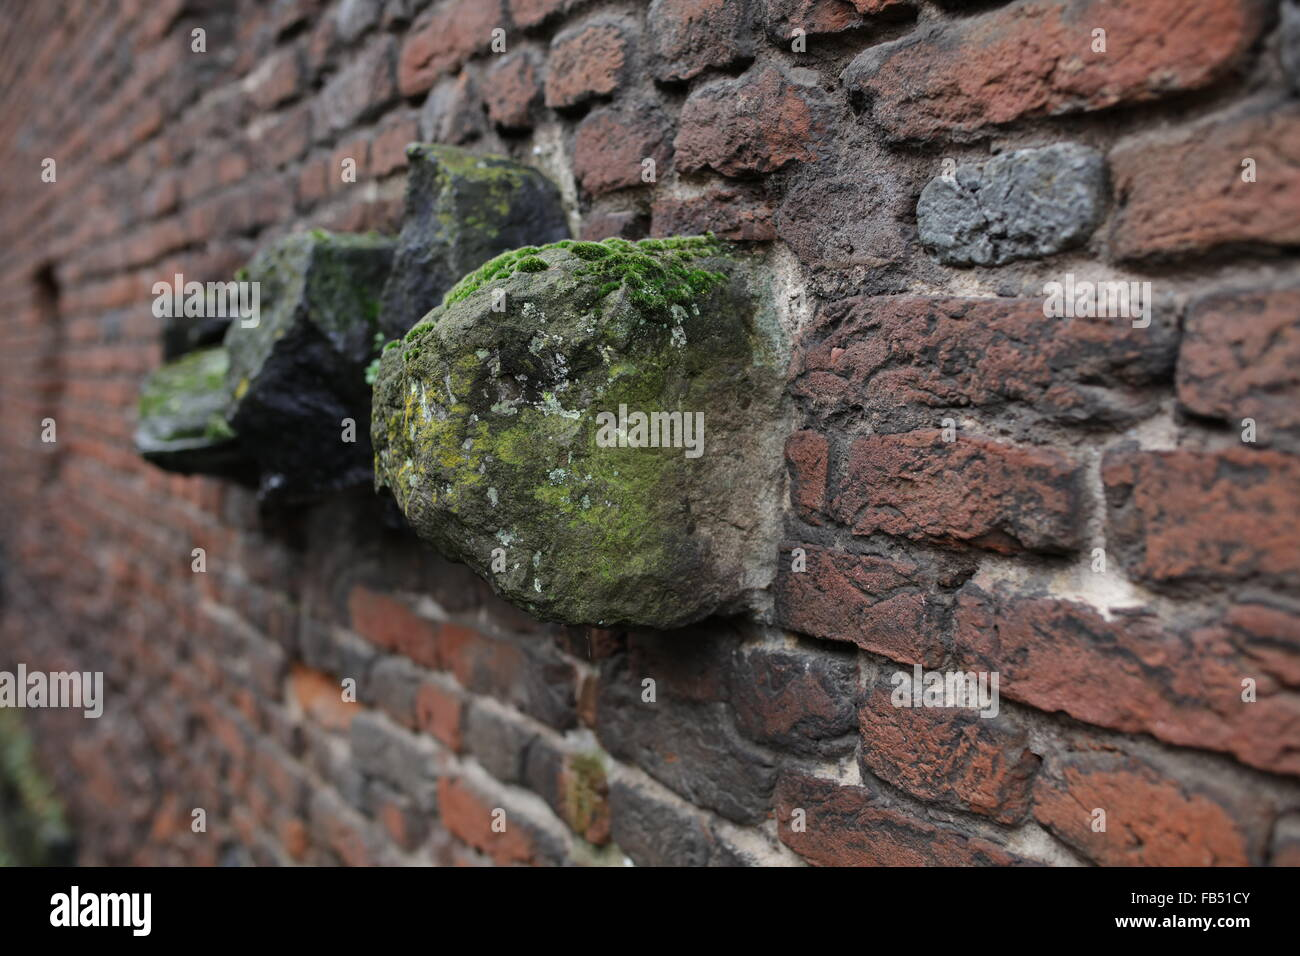 basalt stones build into a brick wall, Zons, Northrhine Westphalia NRW, Germany - Stock Image